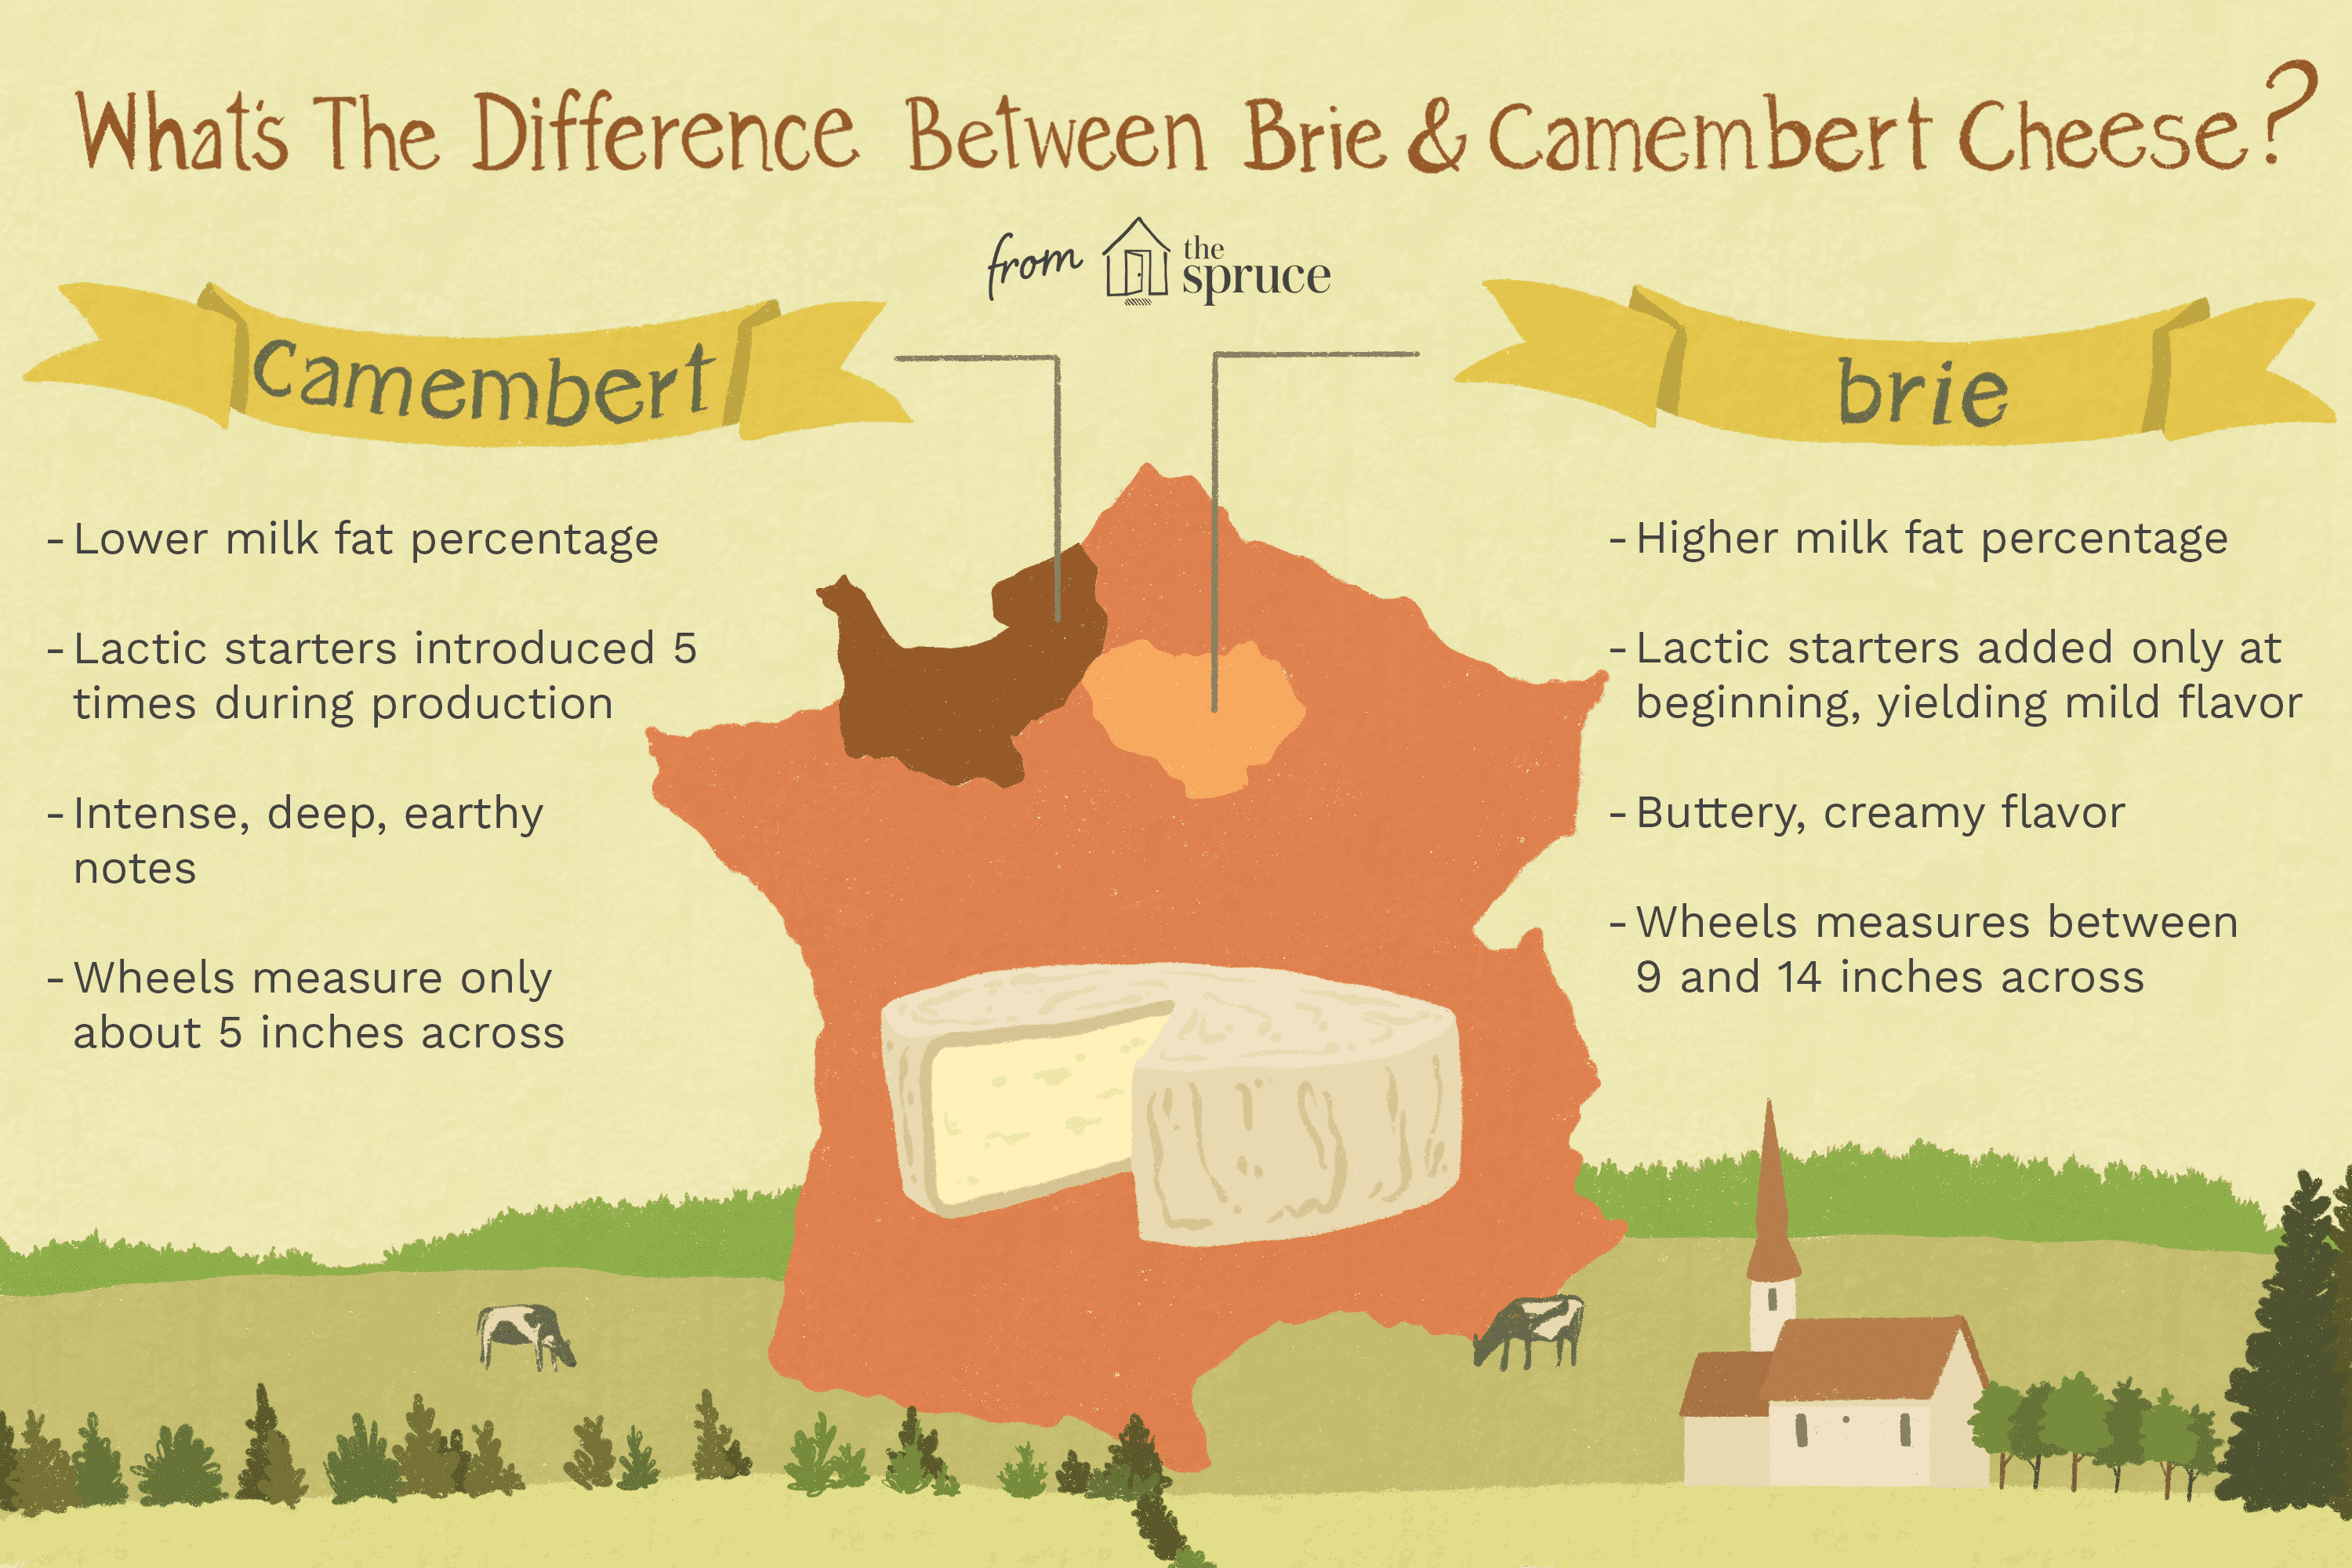 Difference between brie and camembert cheeses